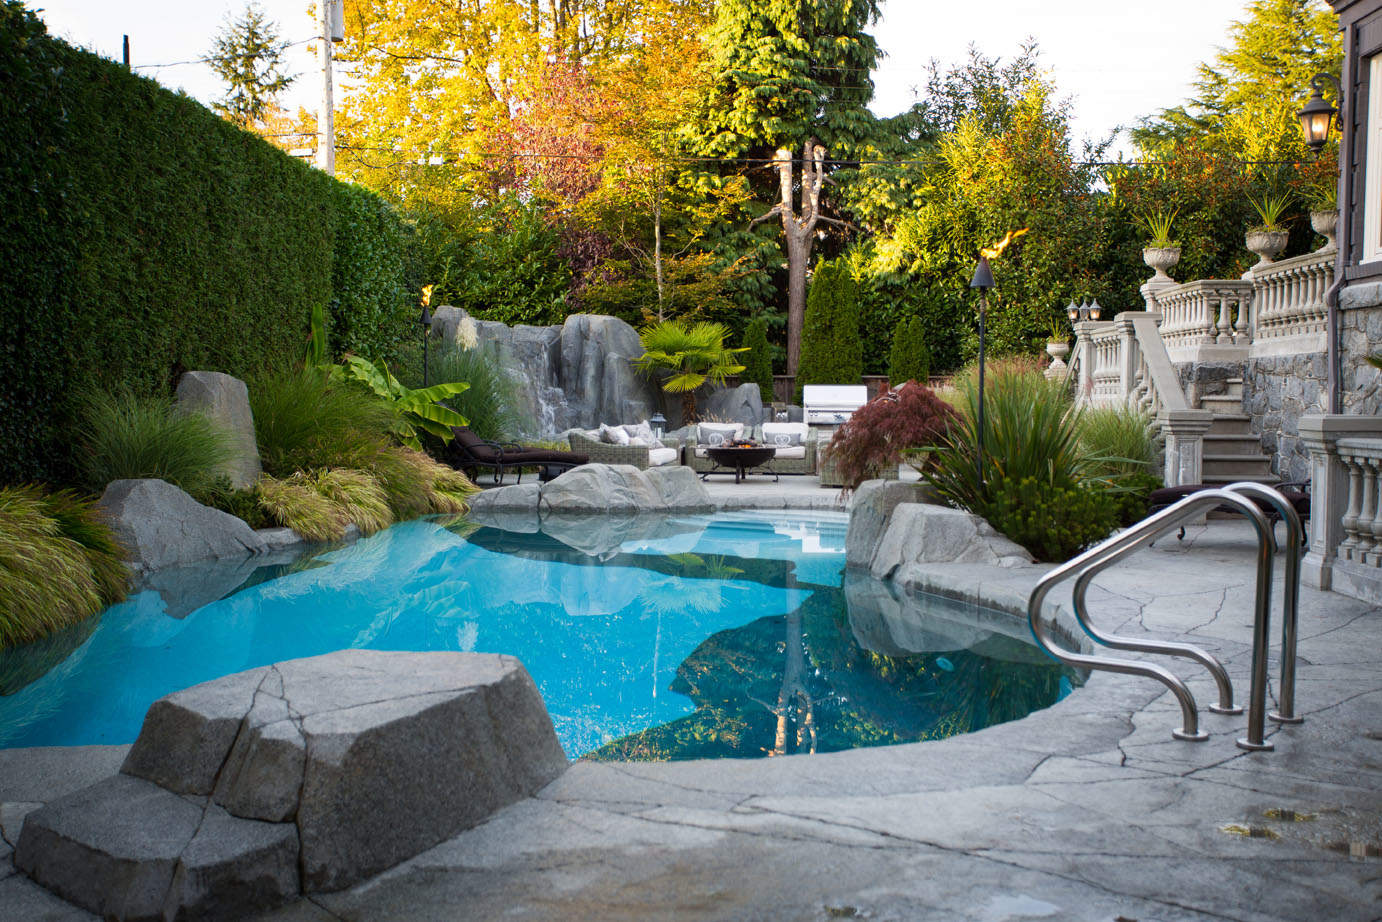 Stunning In-ground concrete swimming pool